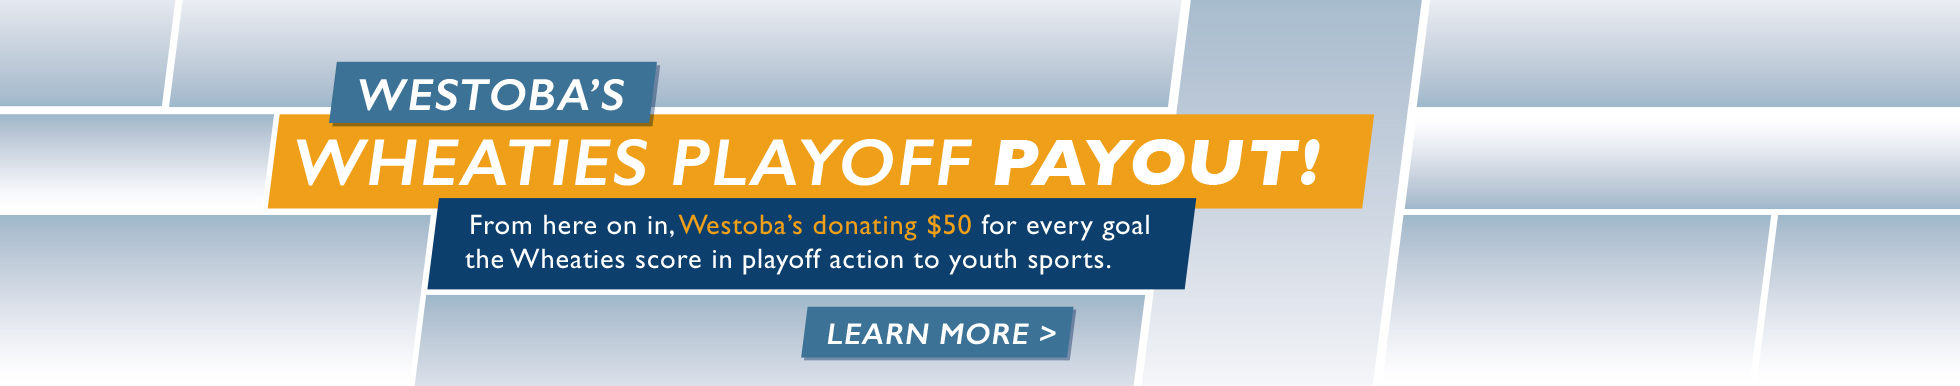 5767 WCU_Playoff_Payout_Homepage_banner